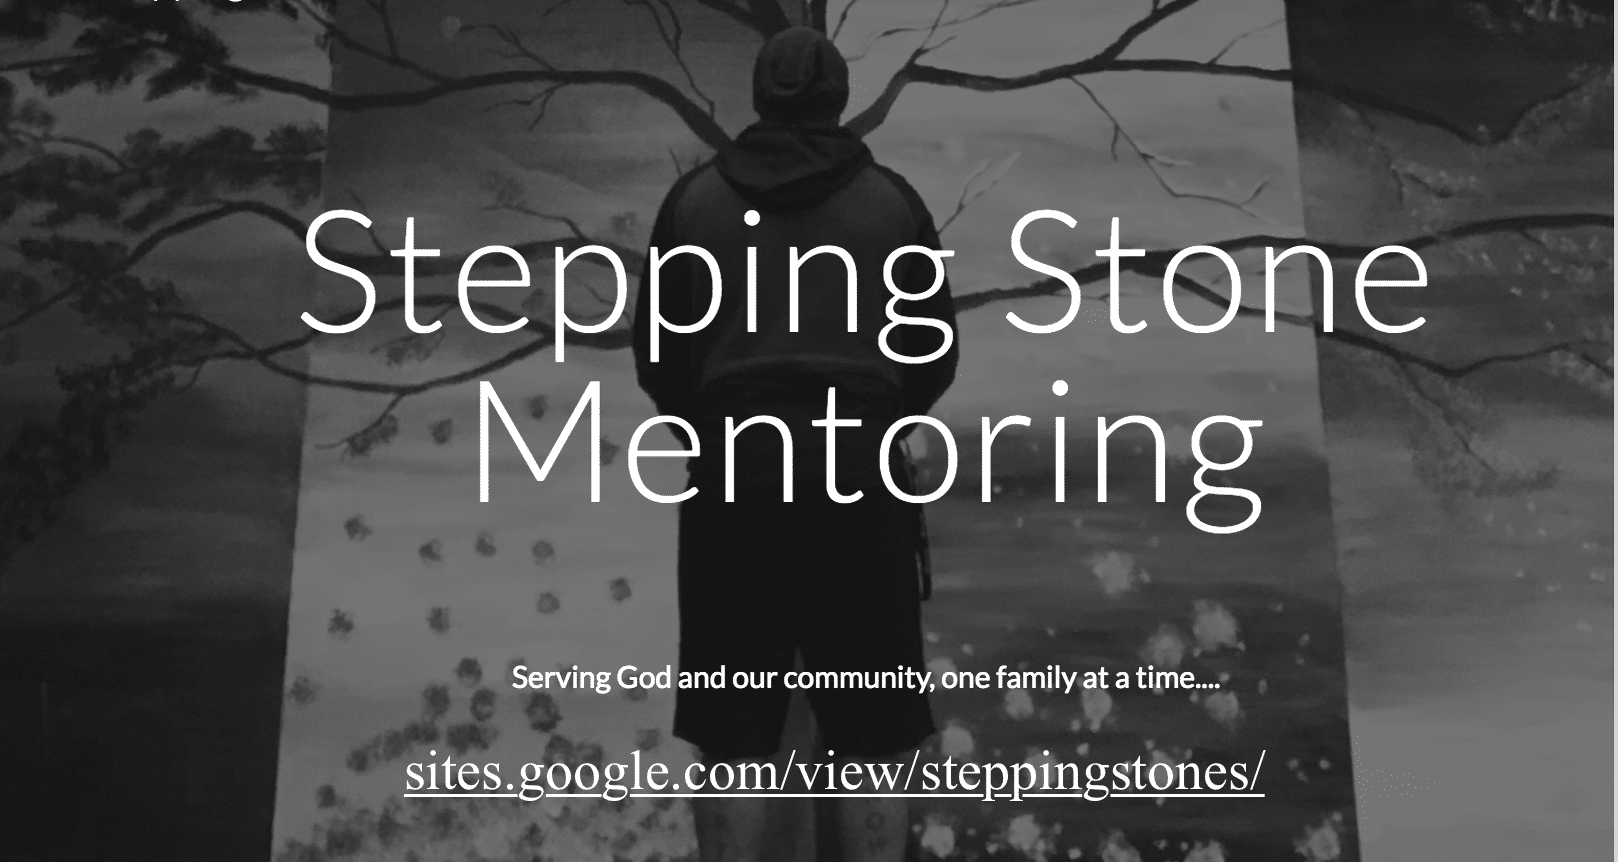 Stepping Stones Mentoring